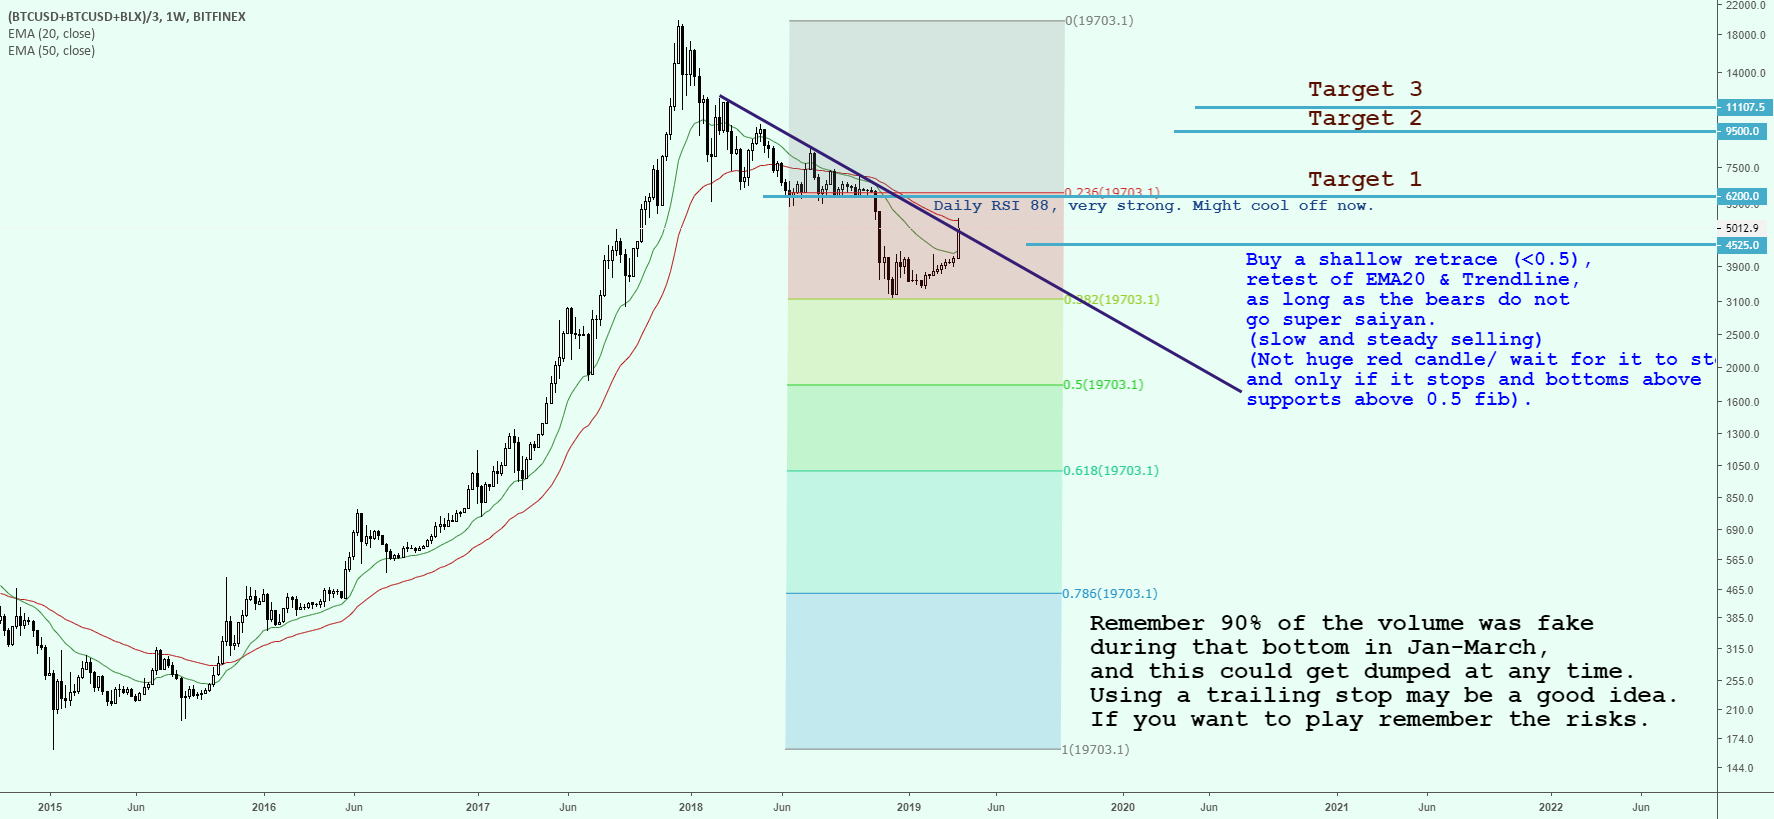 MrRenev 의 BITSTAMP:BTCUSD 용 SORRY FOR SPAMMING BITCOIN CHARTS BUT